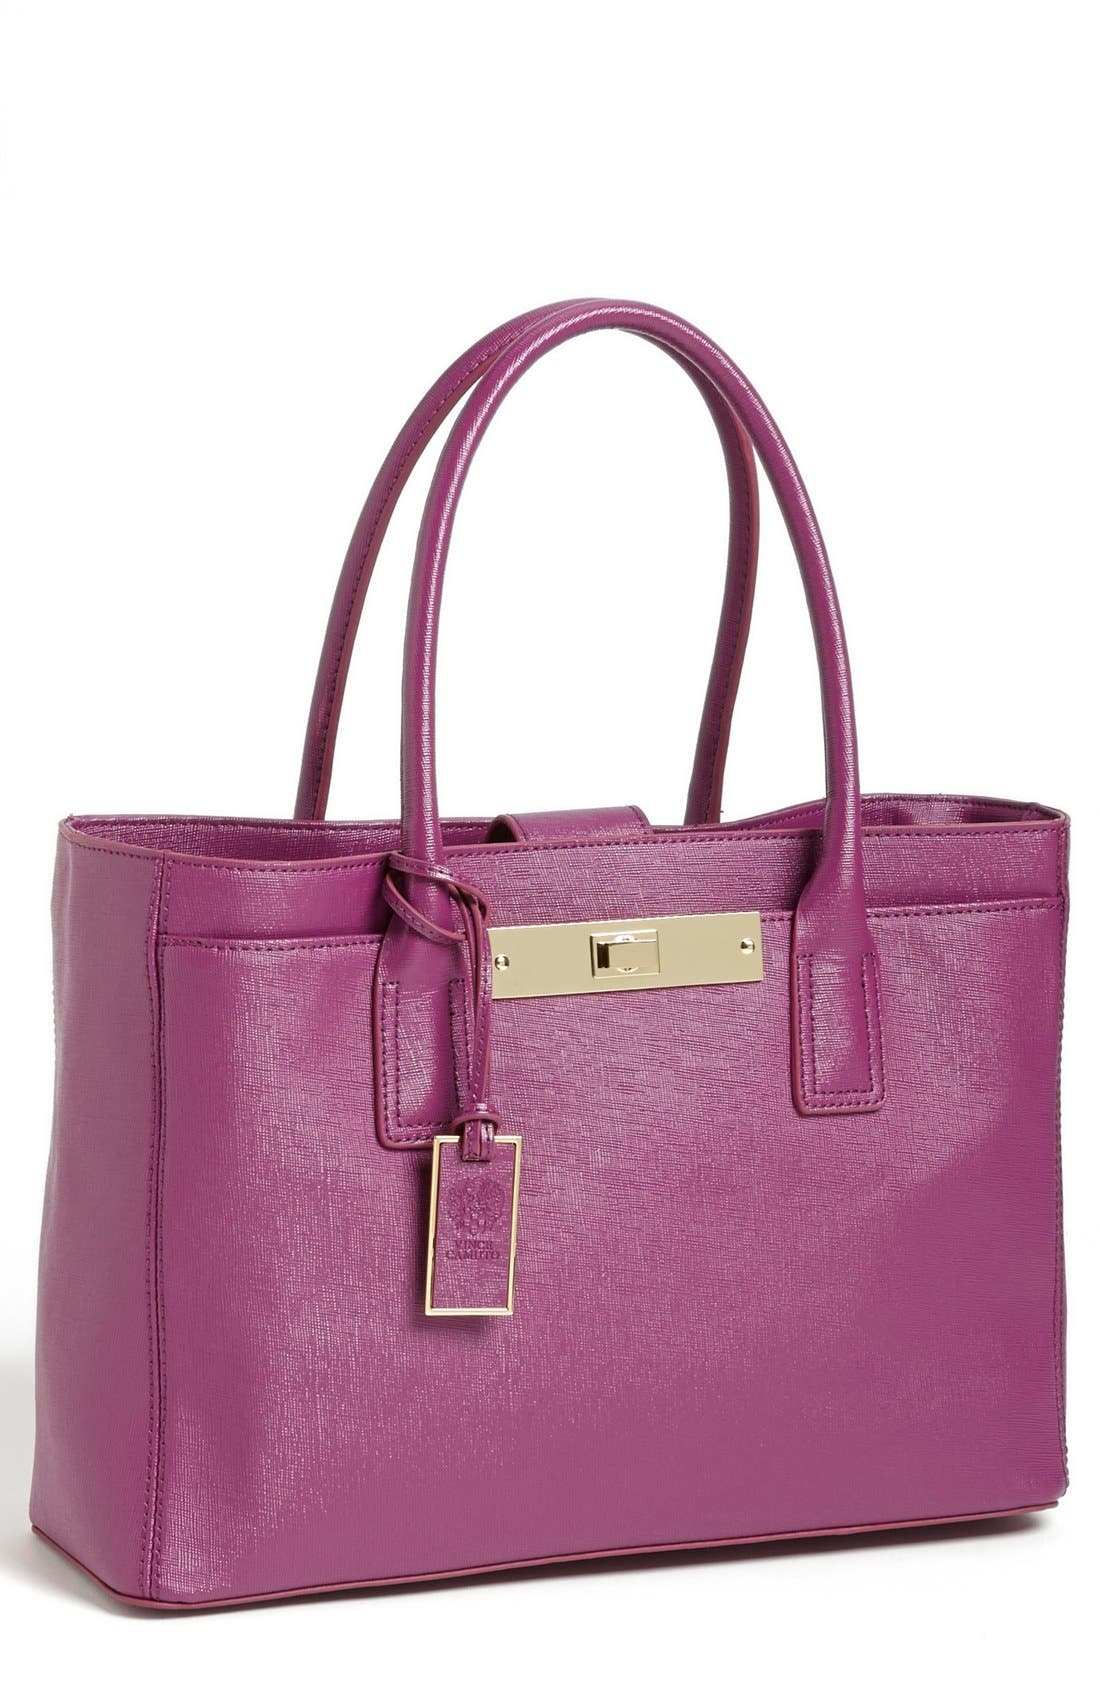 Alternate Image 1 Selected - Vince Camuto 'Alex' Tote, Large